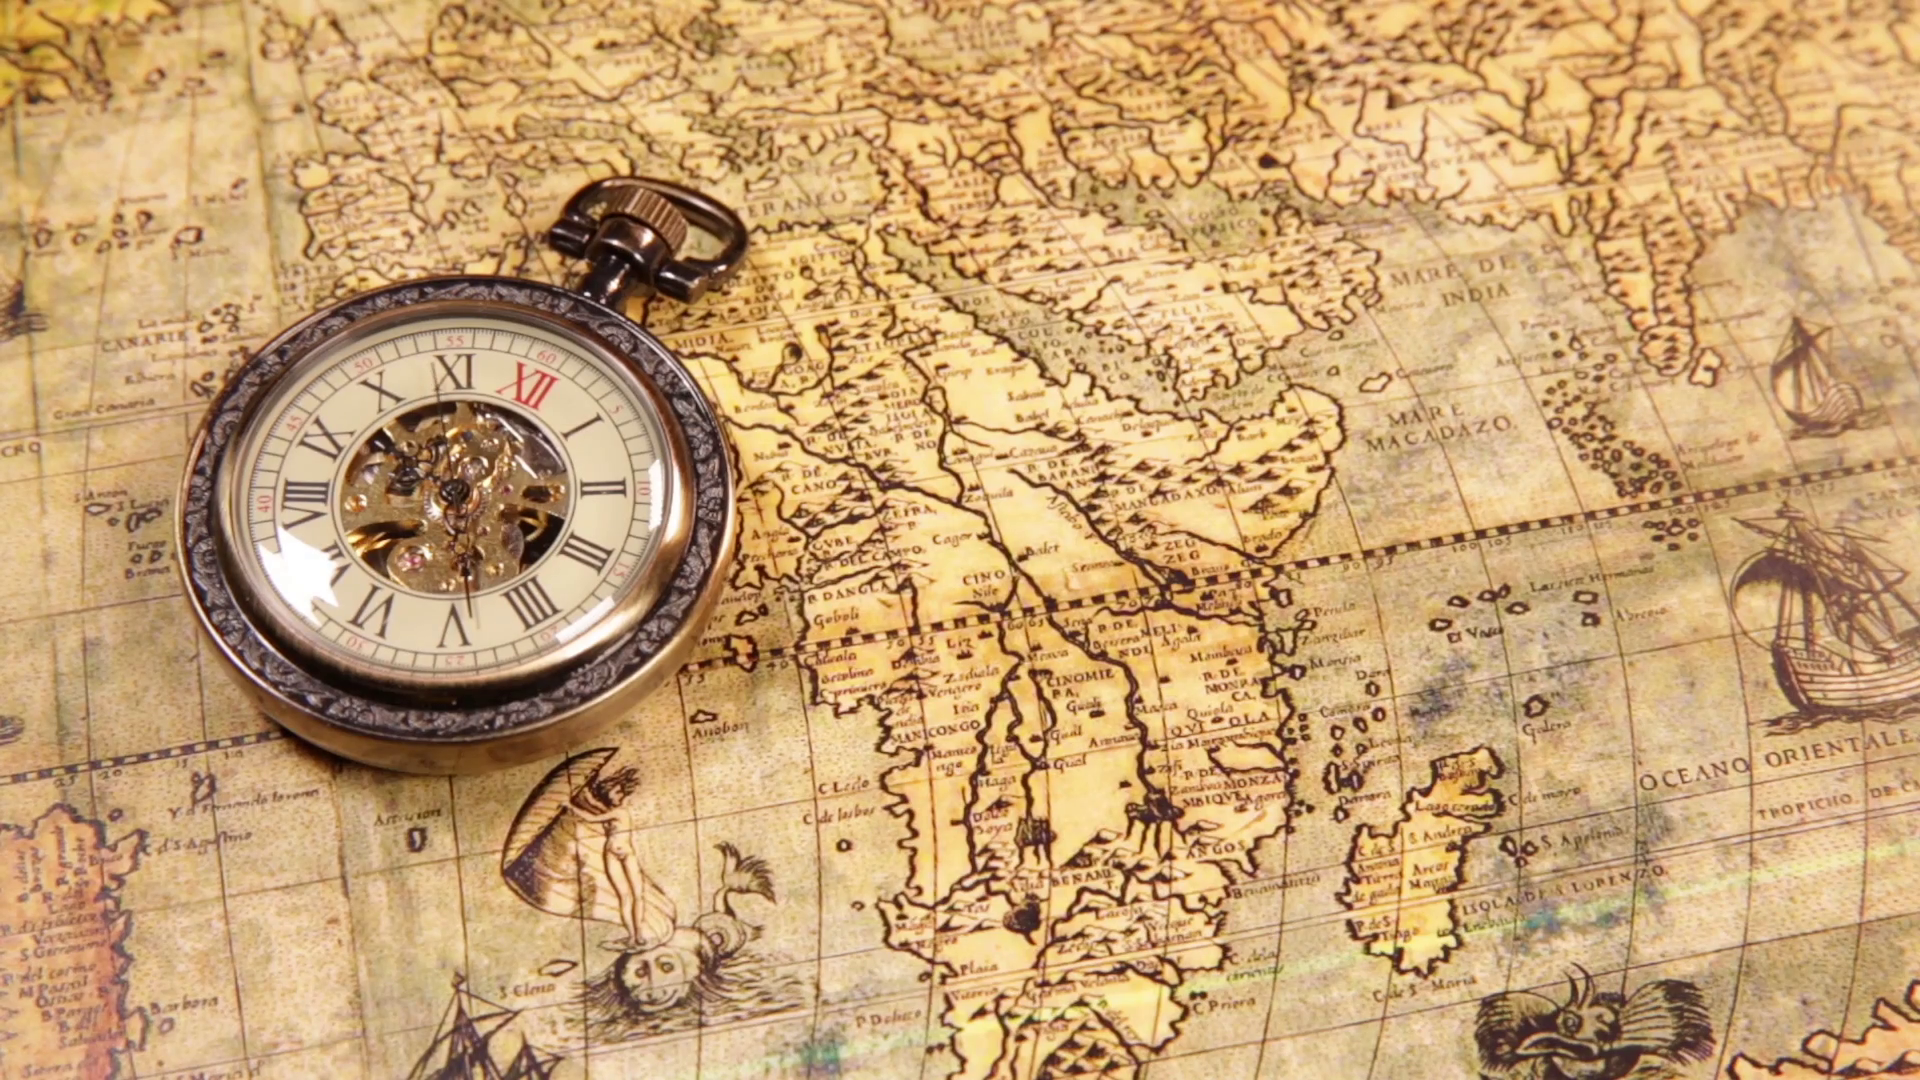 Vintage Map Png - Vintage clocks on the map. Old world map in 1565. Stock Video ...